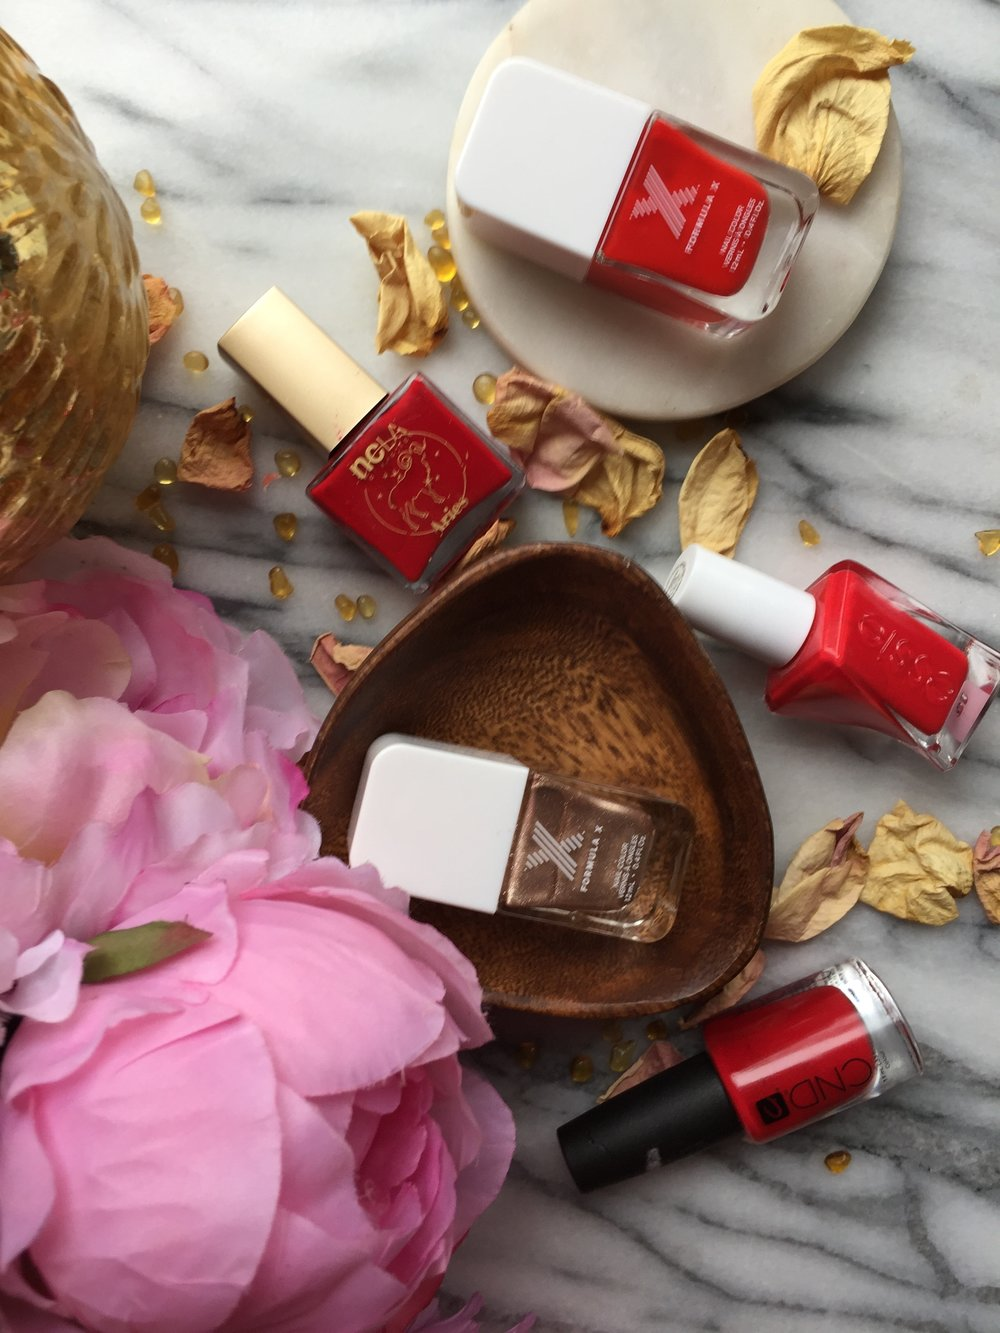 NCLA Aries, CND Rouge Red, Essie Rock The Runway, Formula X Haute Sauce and Formula X Revved Up